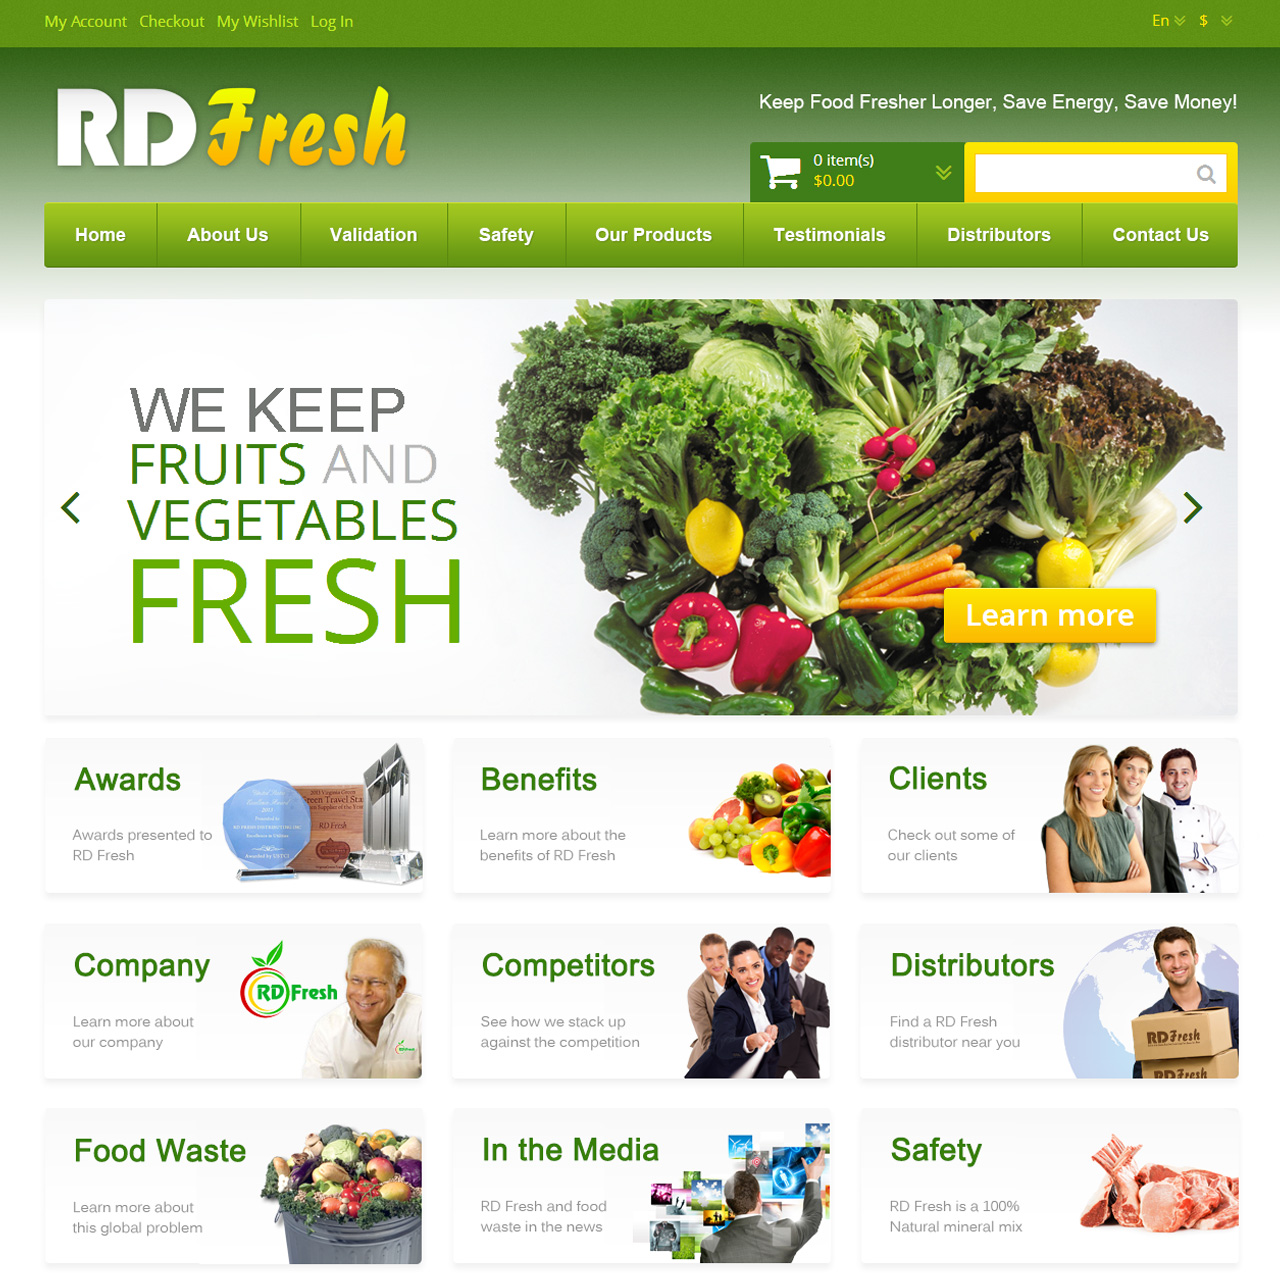 RD Fresh Distributing